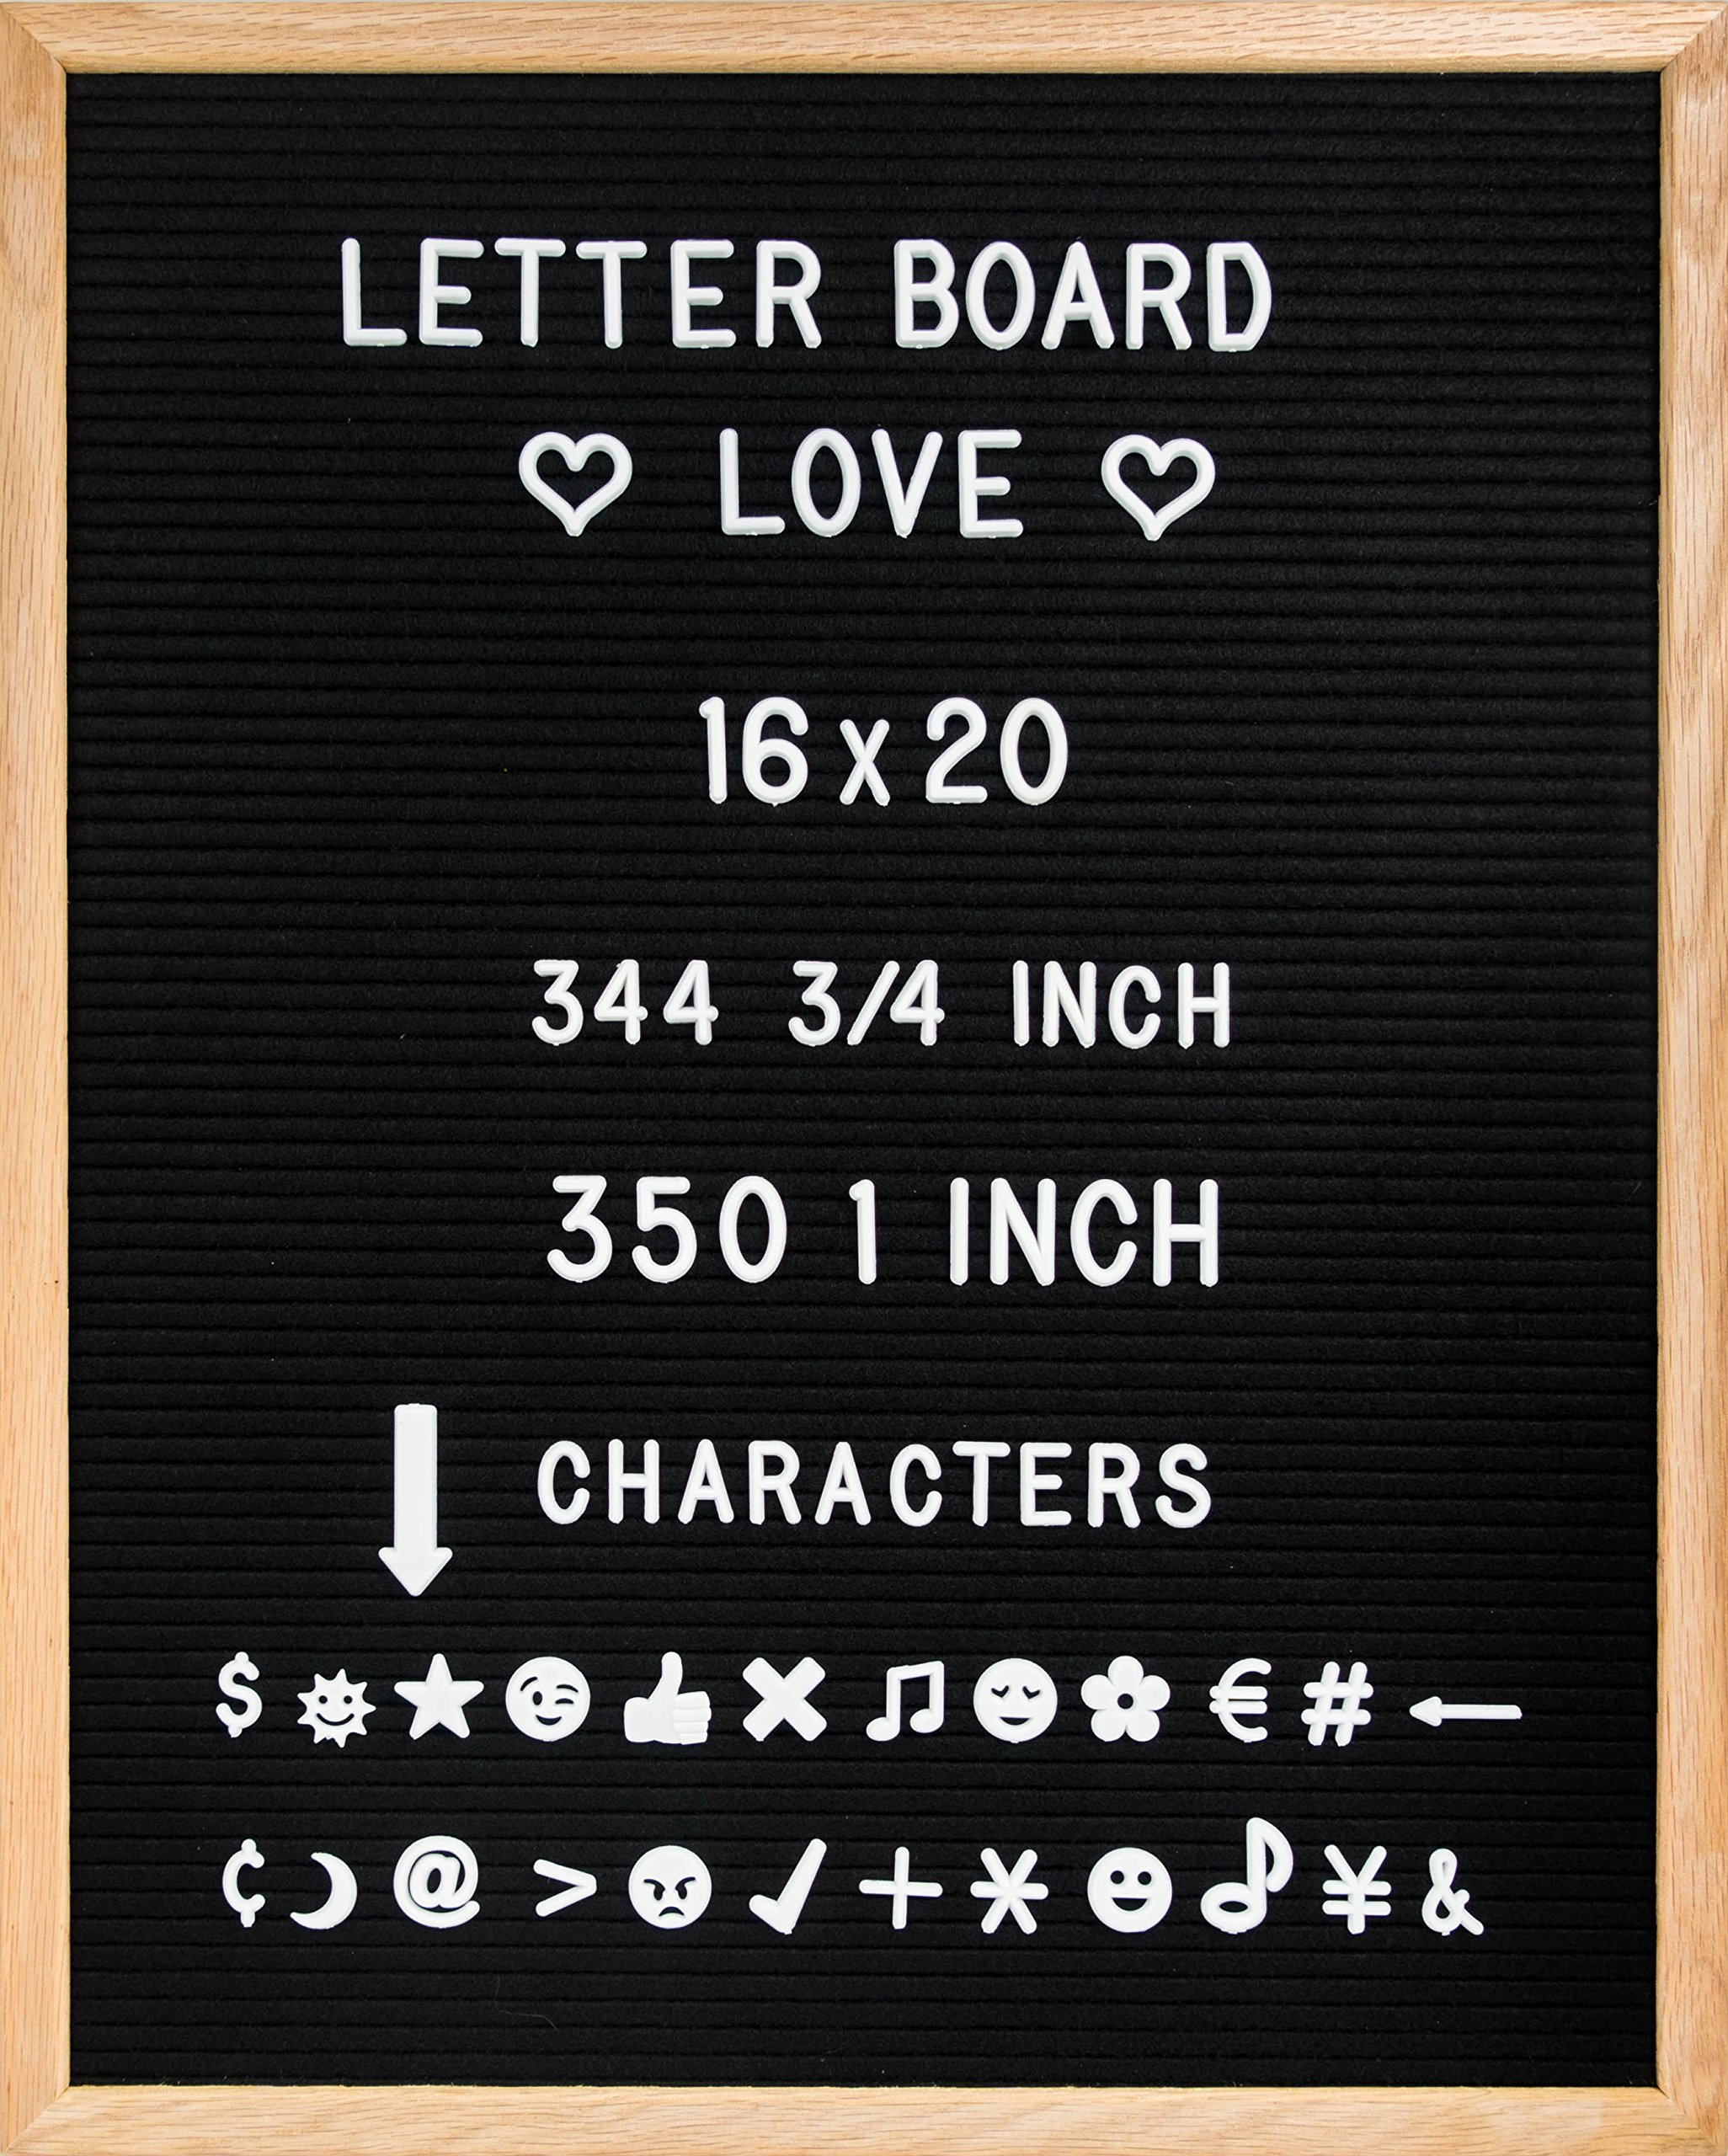 16'' x 20'' Felt Letter Board with Oak Wood Frame, 344 3/4'' & 350 1'' Letters, and Two Canvas Letter Bags (Black Felt)